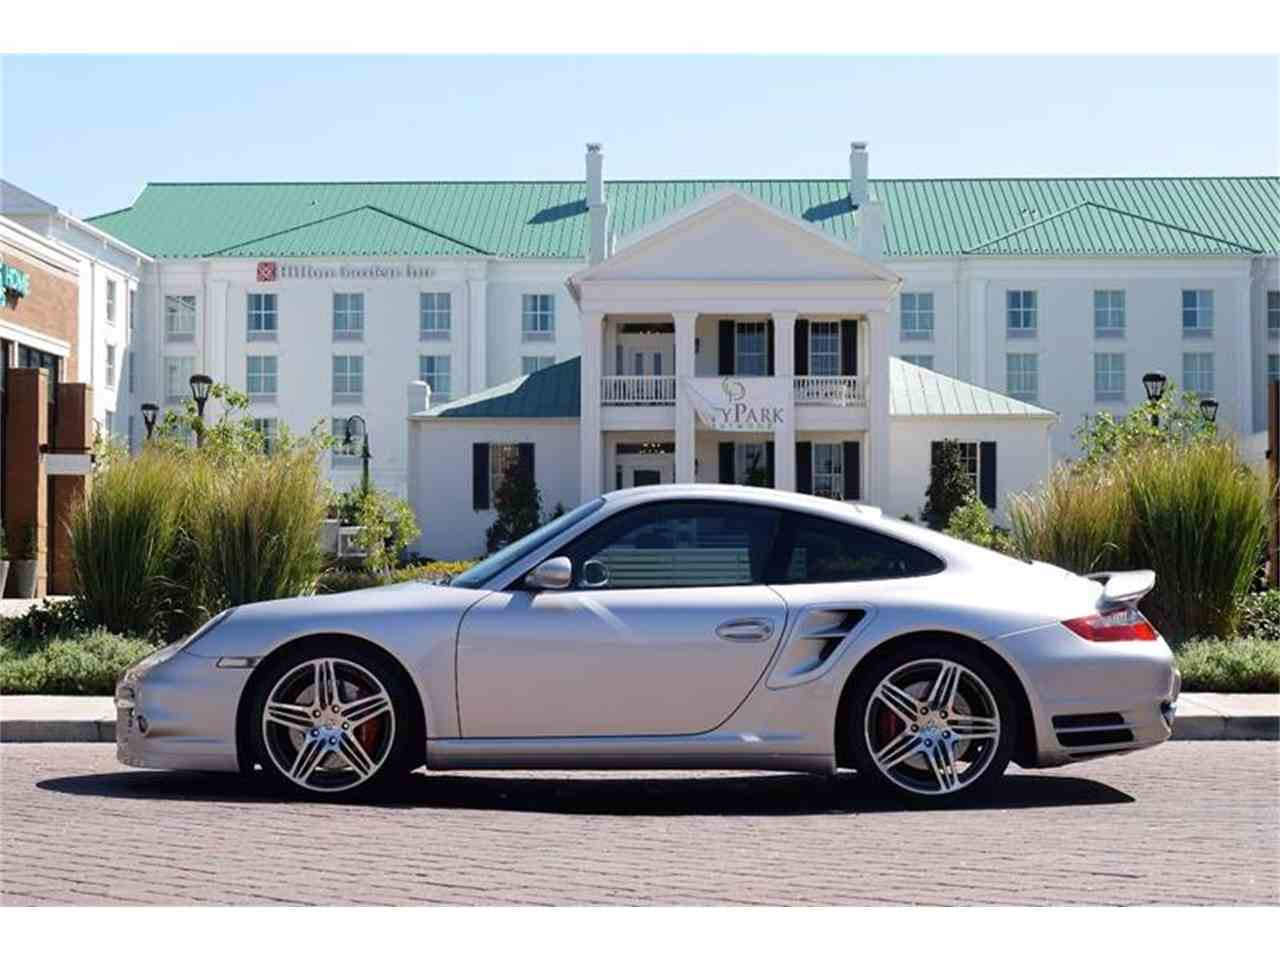 Large Picture of 2007 Porsche 911 located in Brentwood Tennessee - $84,800.00 - M2NR